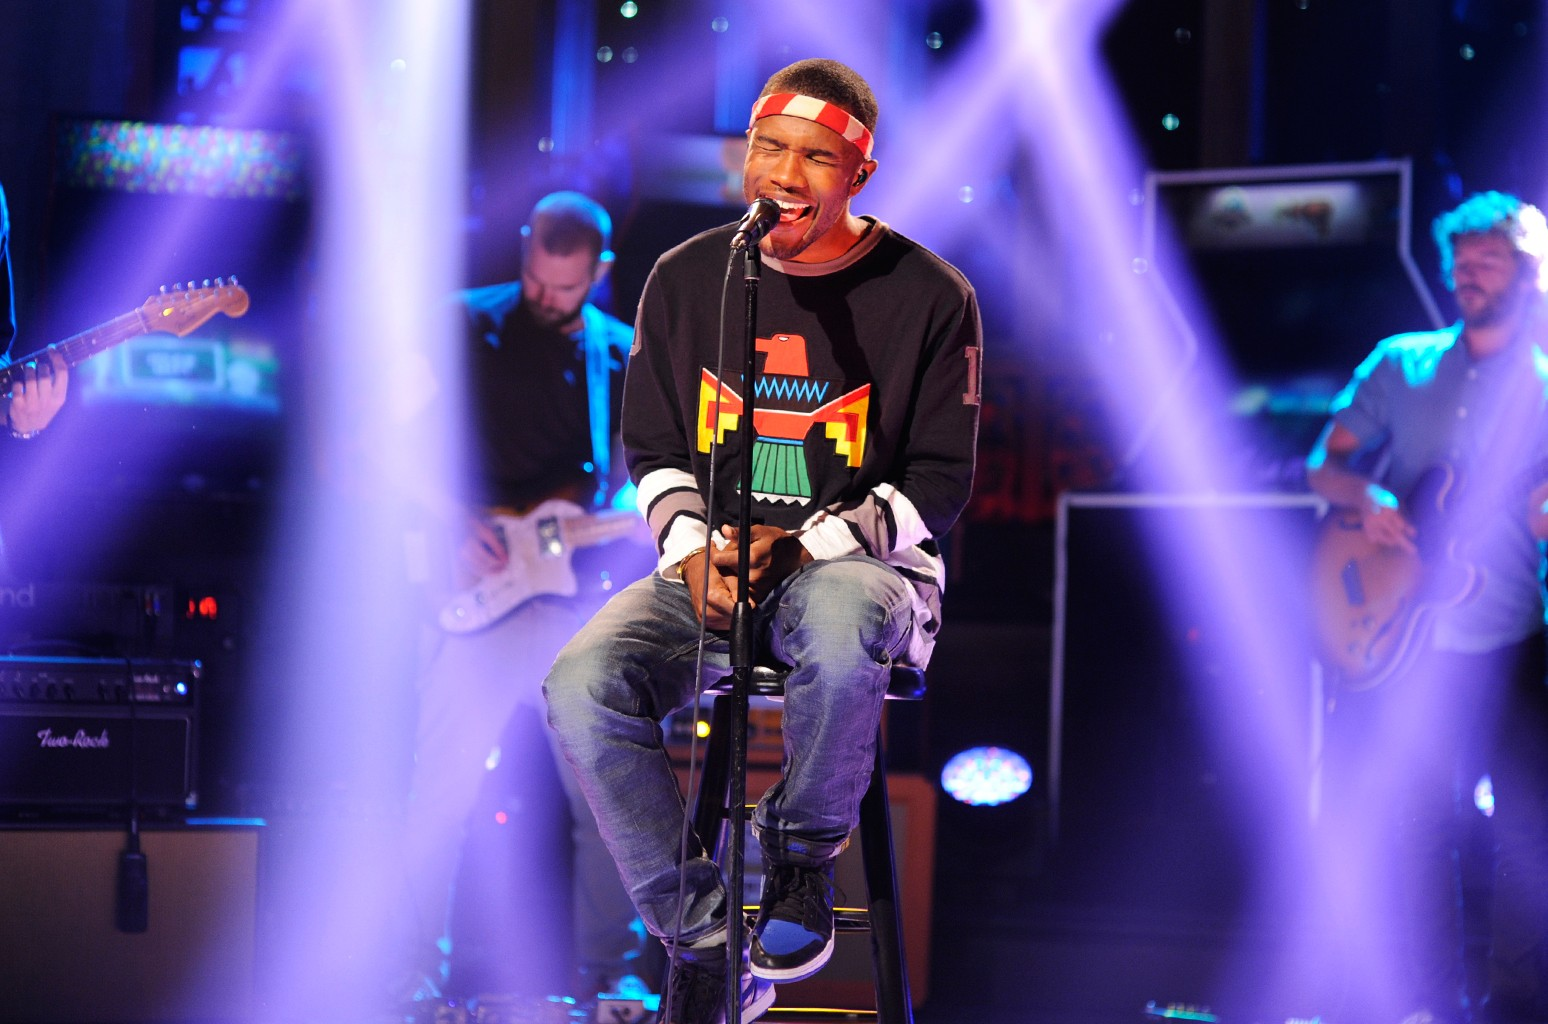 Frank Ocean performs on Saturday Night Live on Sept. 15, 2012.